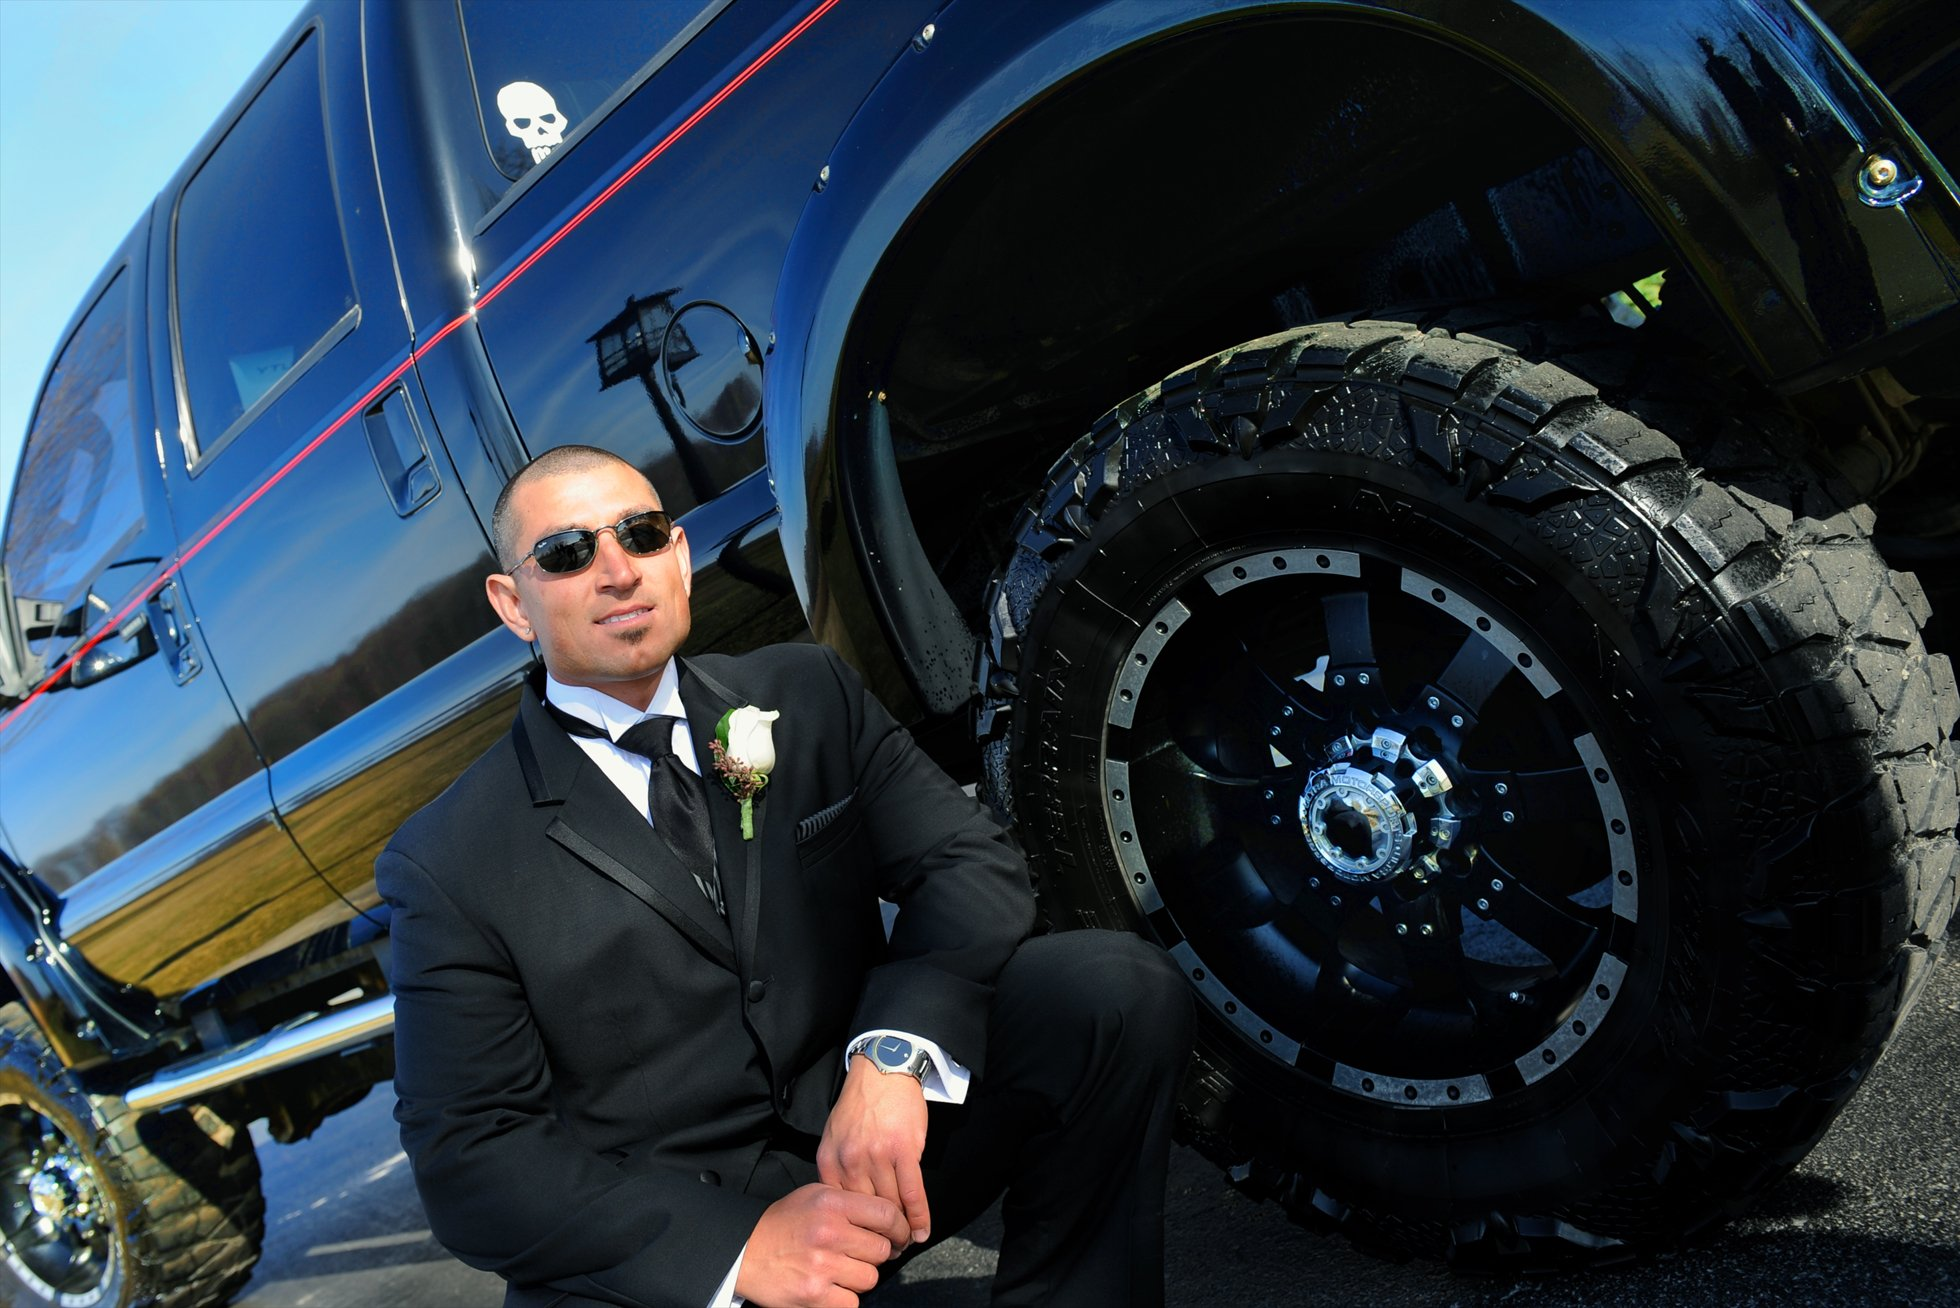 toronto groom and his truck